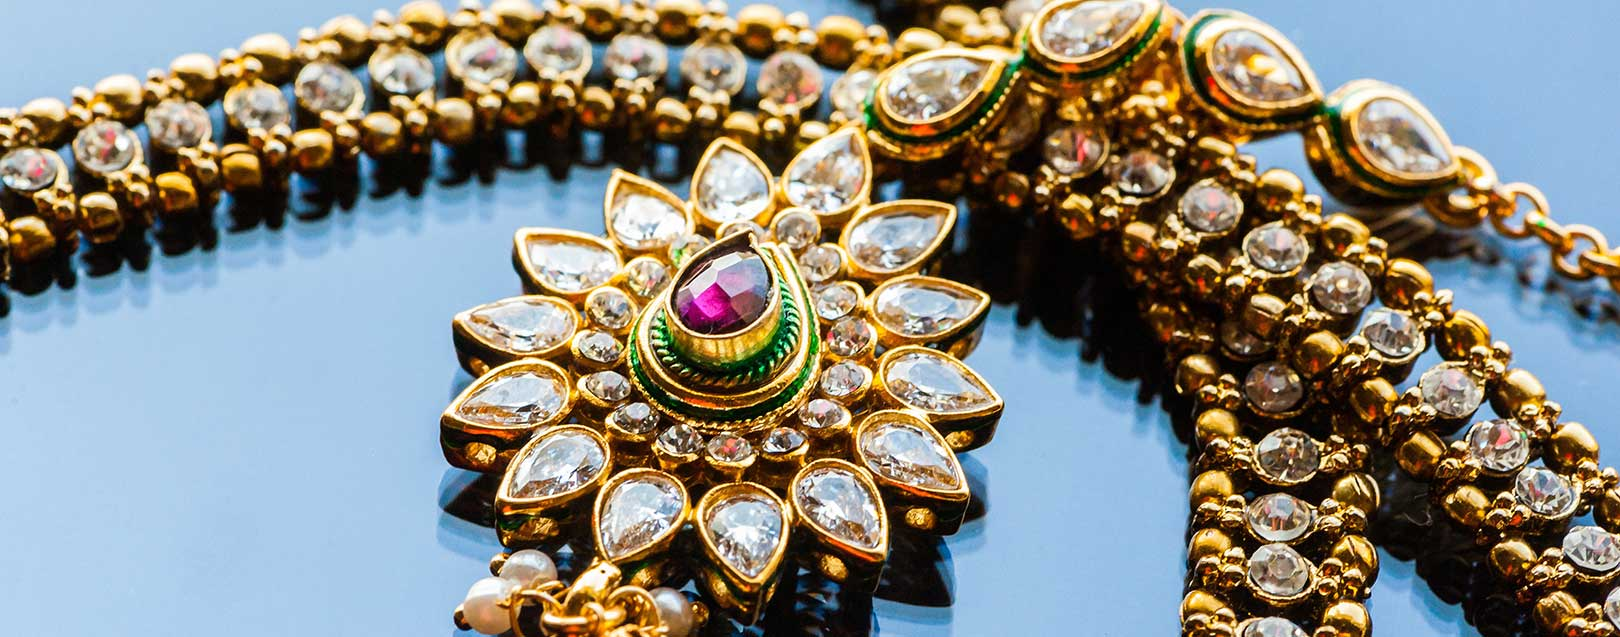 Exports of gems and jewellery likely to touch $60 bn by 2022, GJEPC